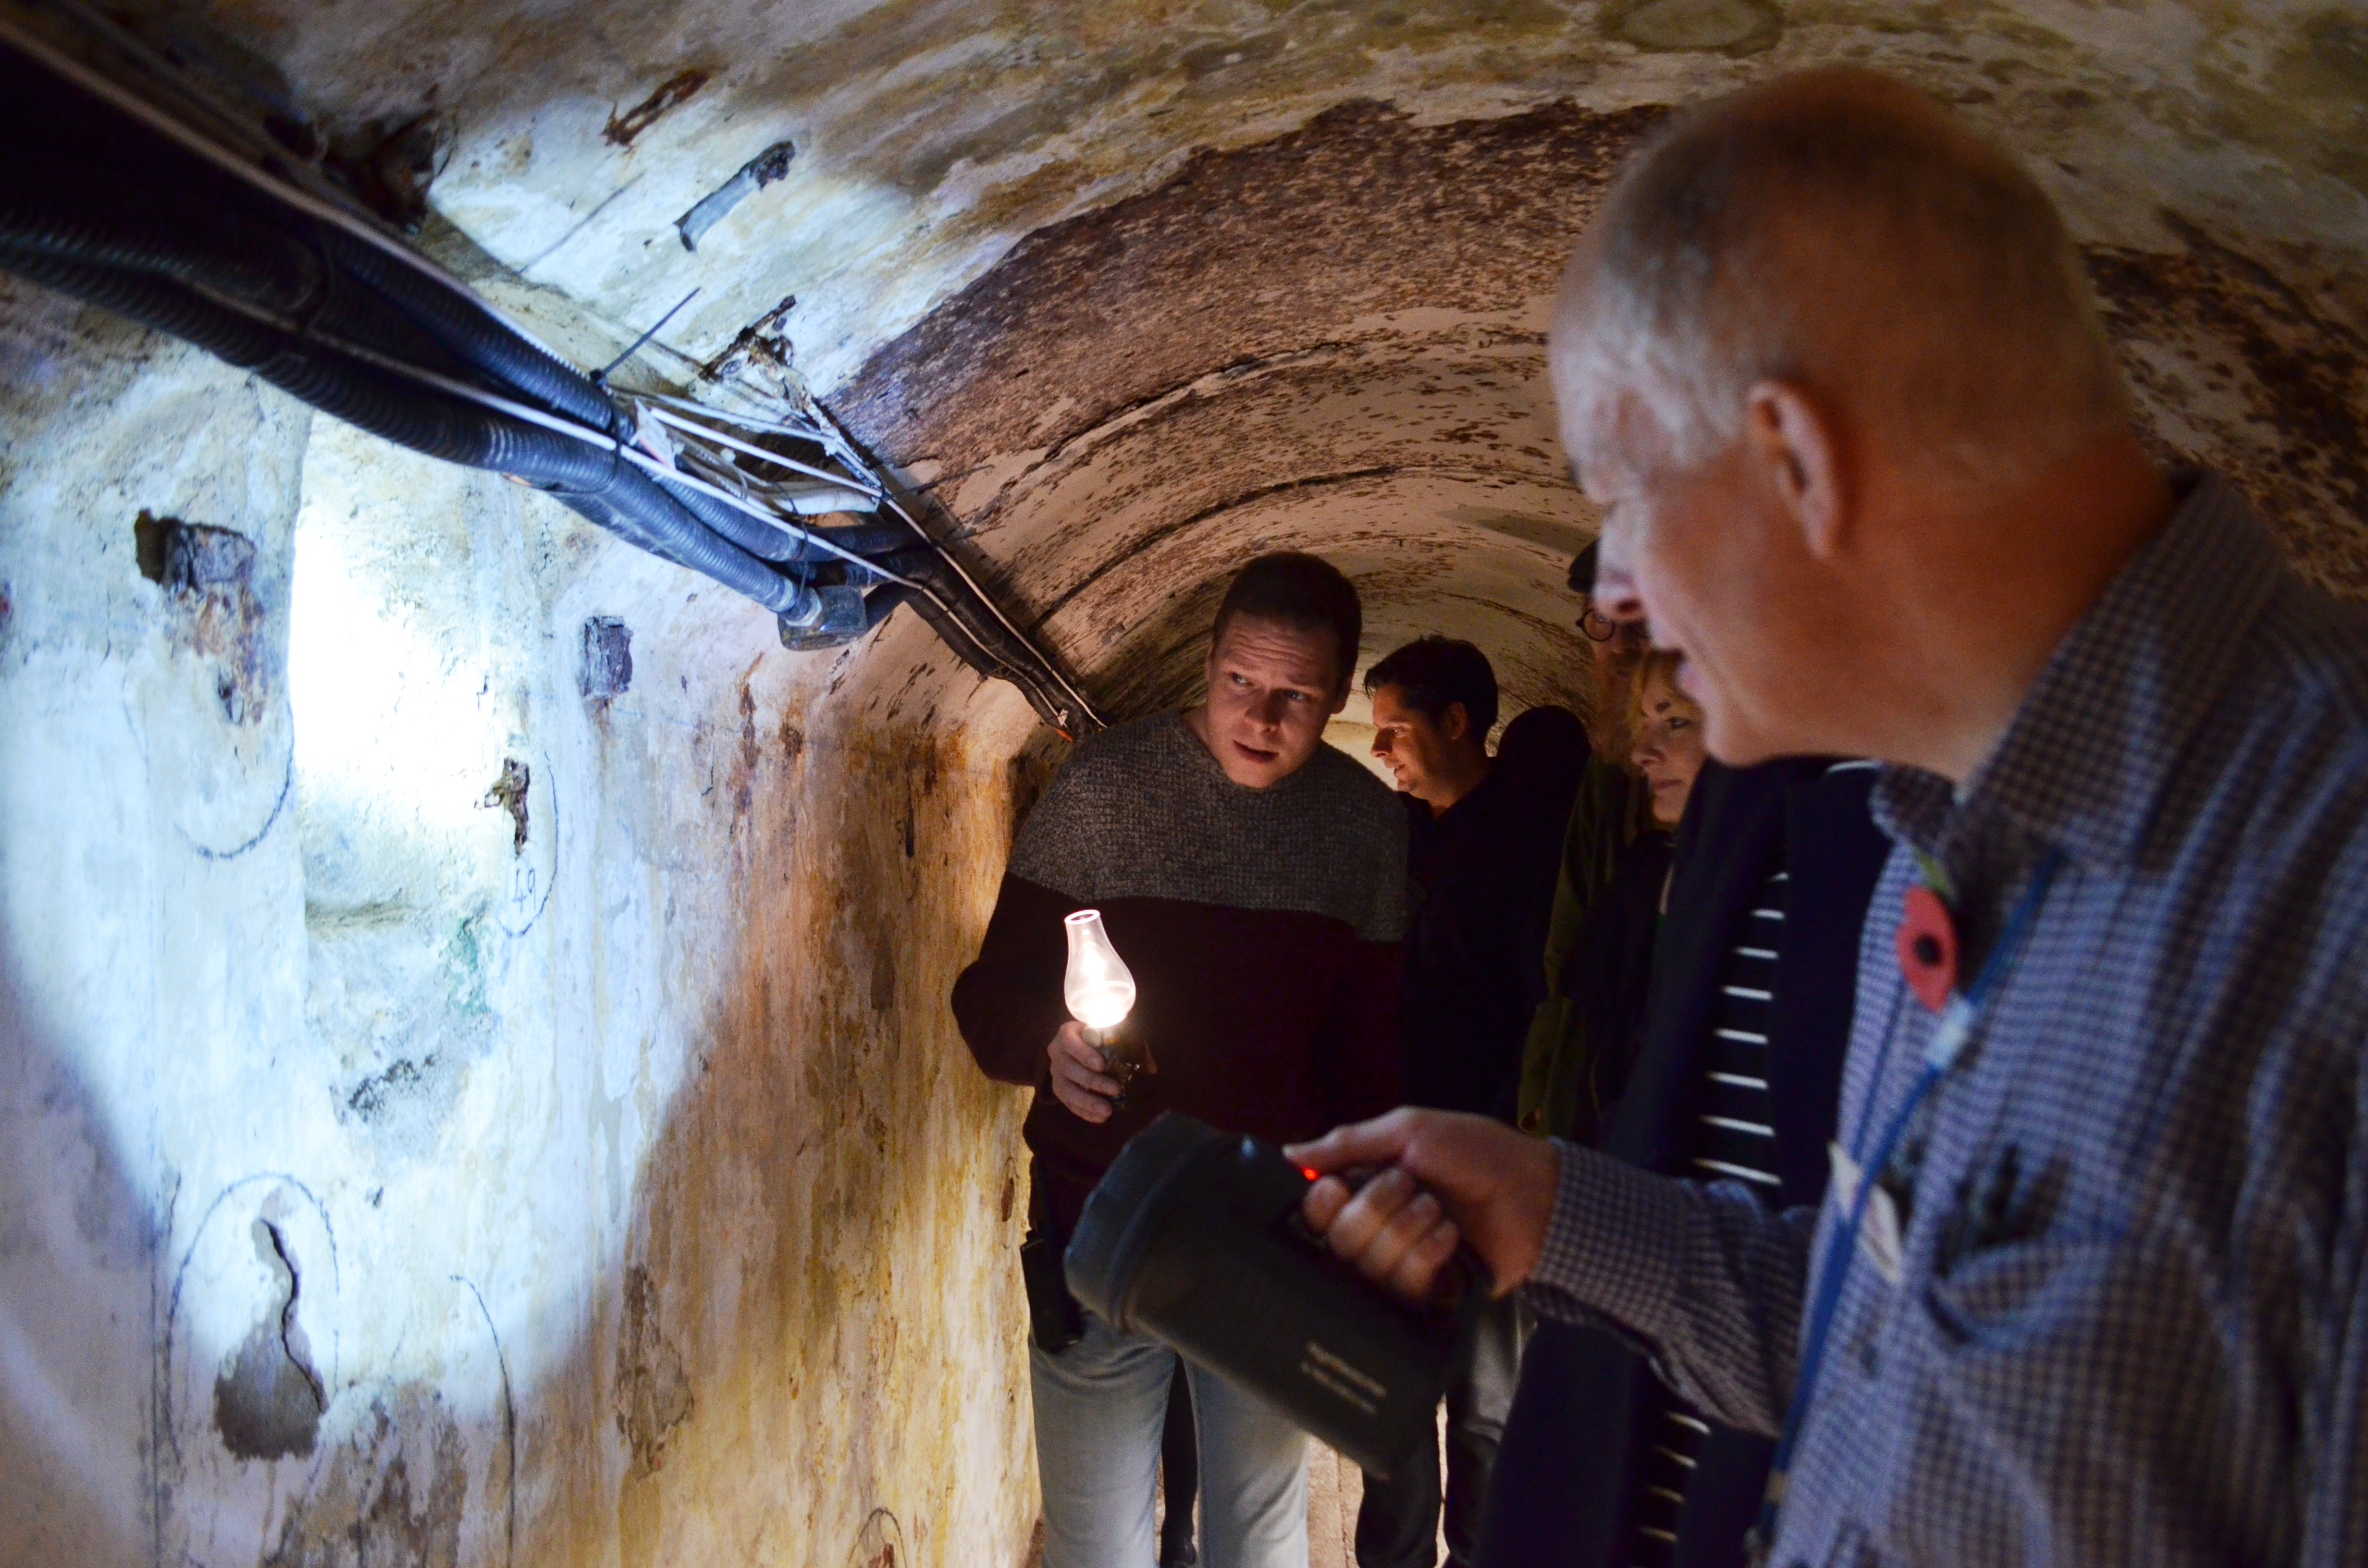 A tour guide shining a light on the wall whilst giving people a tour of the tunnels